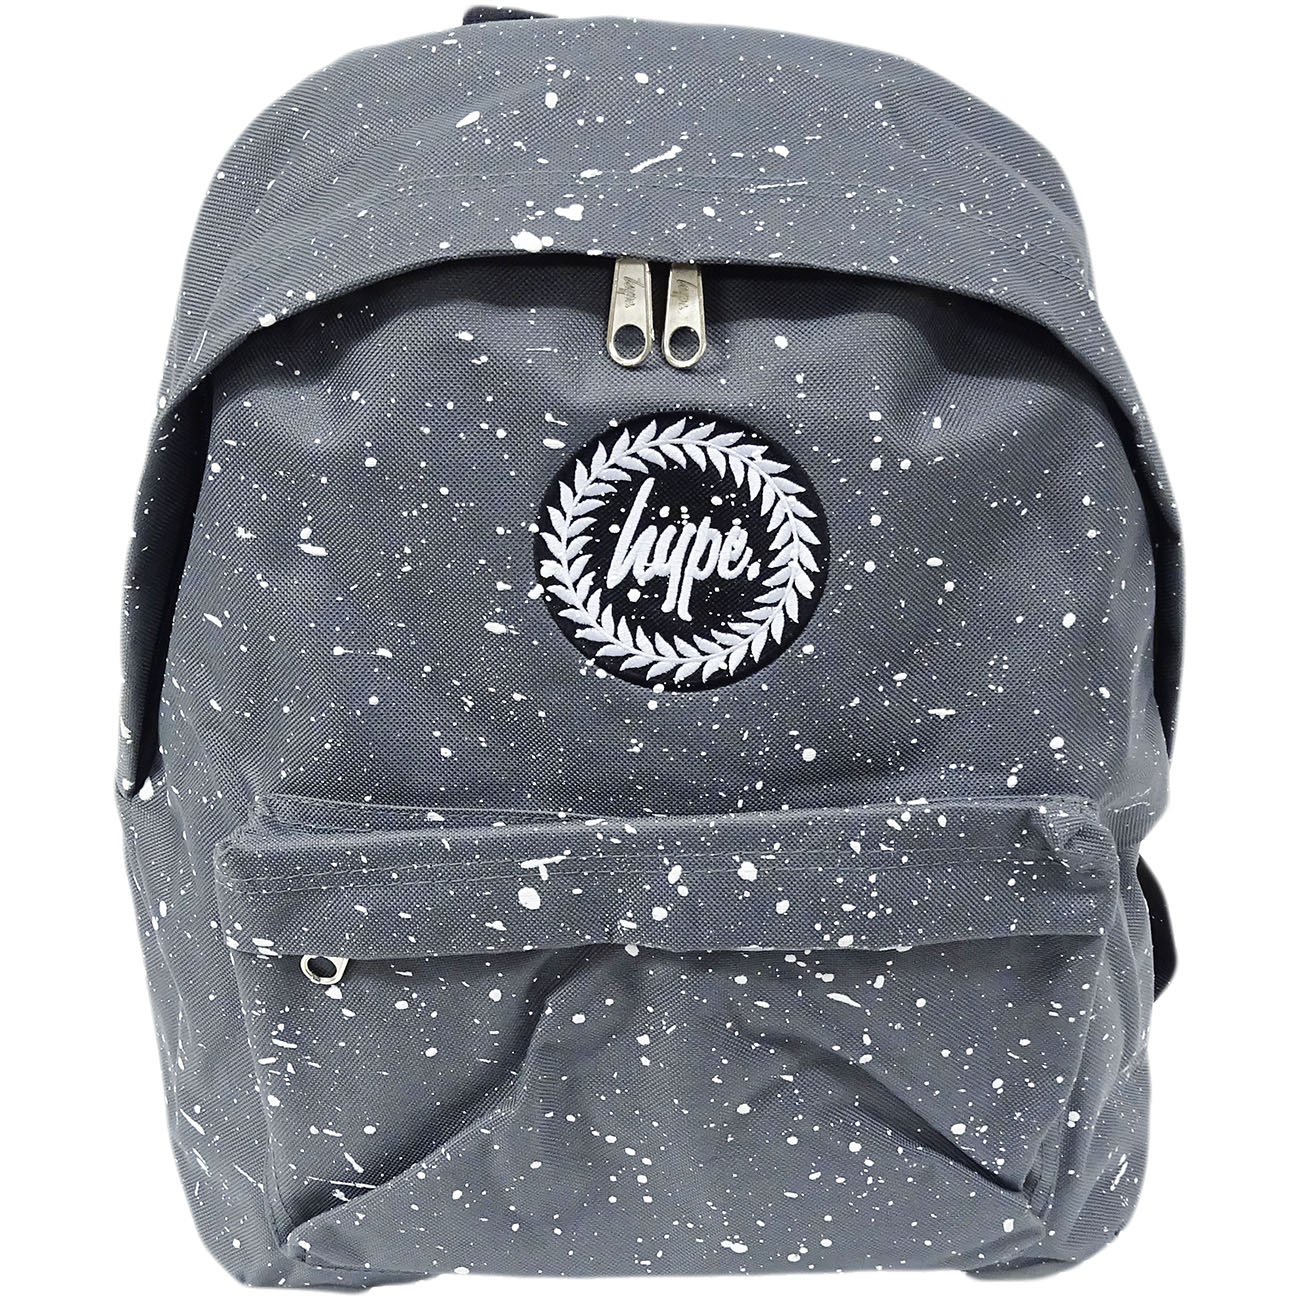 Hype Backpack Bag Grey and White Speckled